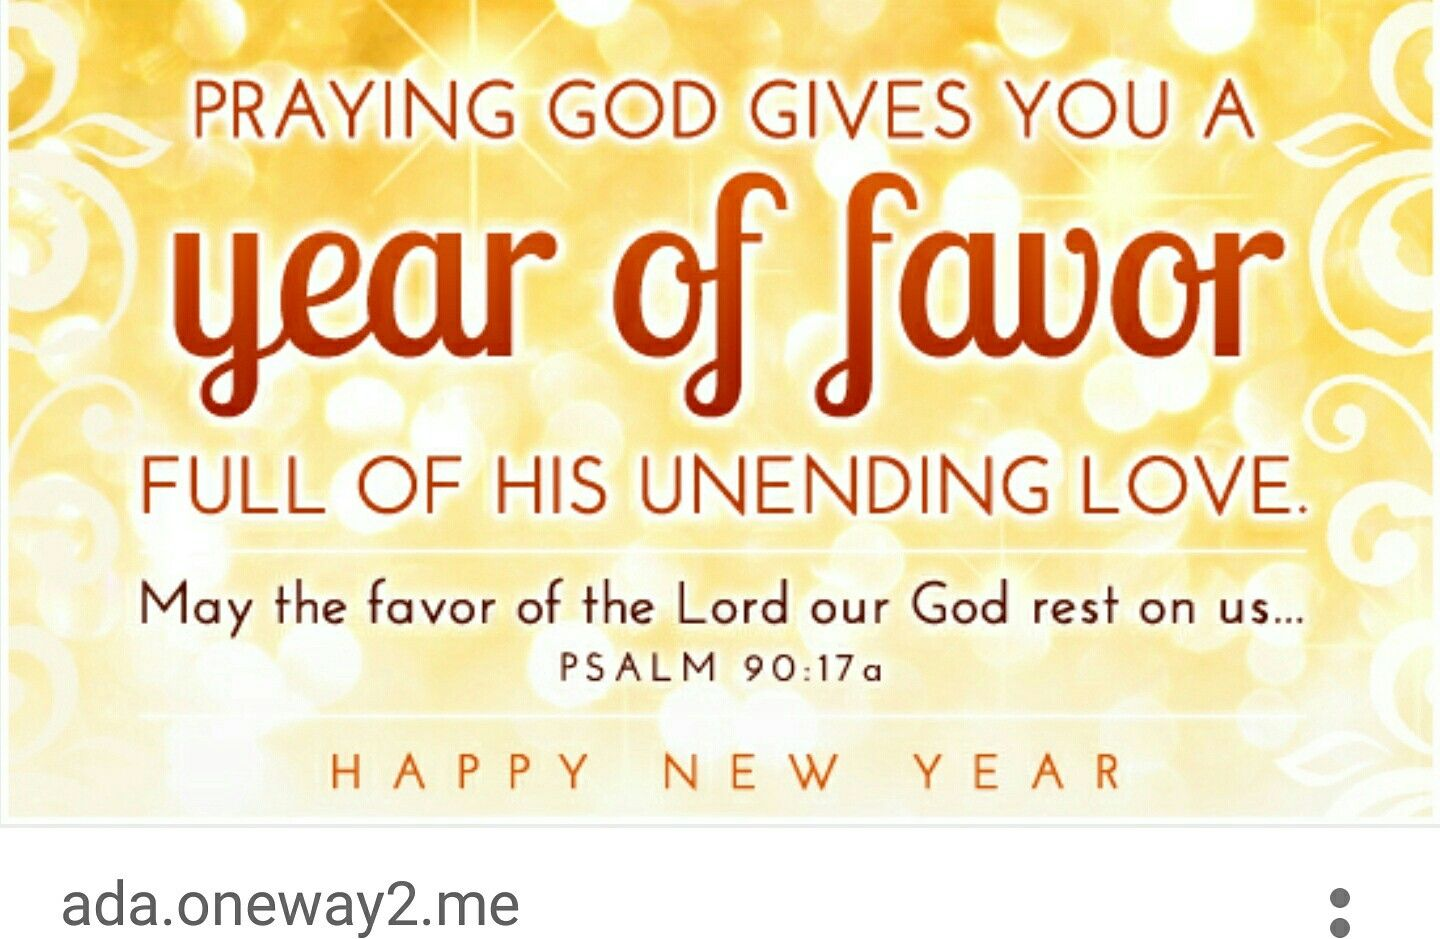 here are some brilliant happy new year 2019 religious messages with quotes most resources are uses in this that the messagesthe wattsapp are use to start